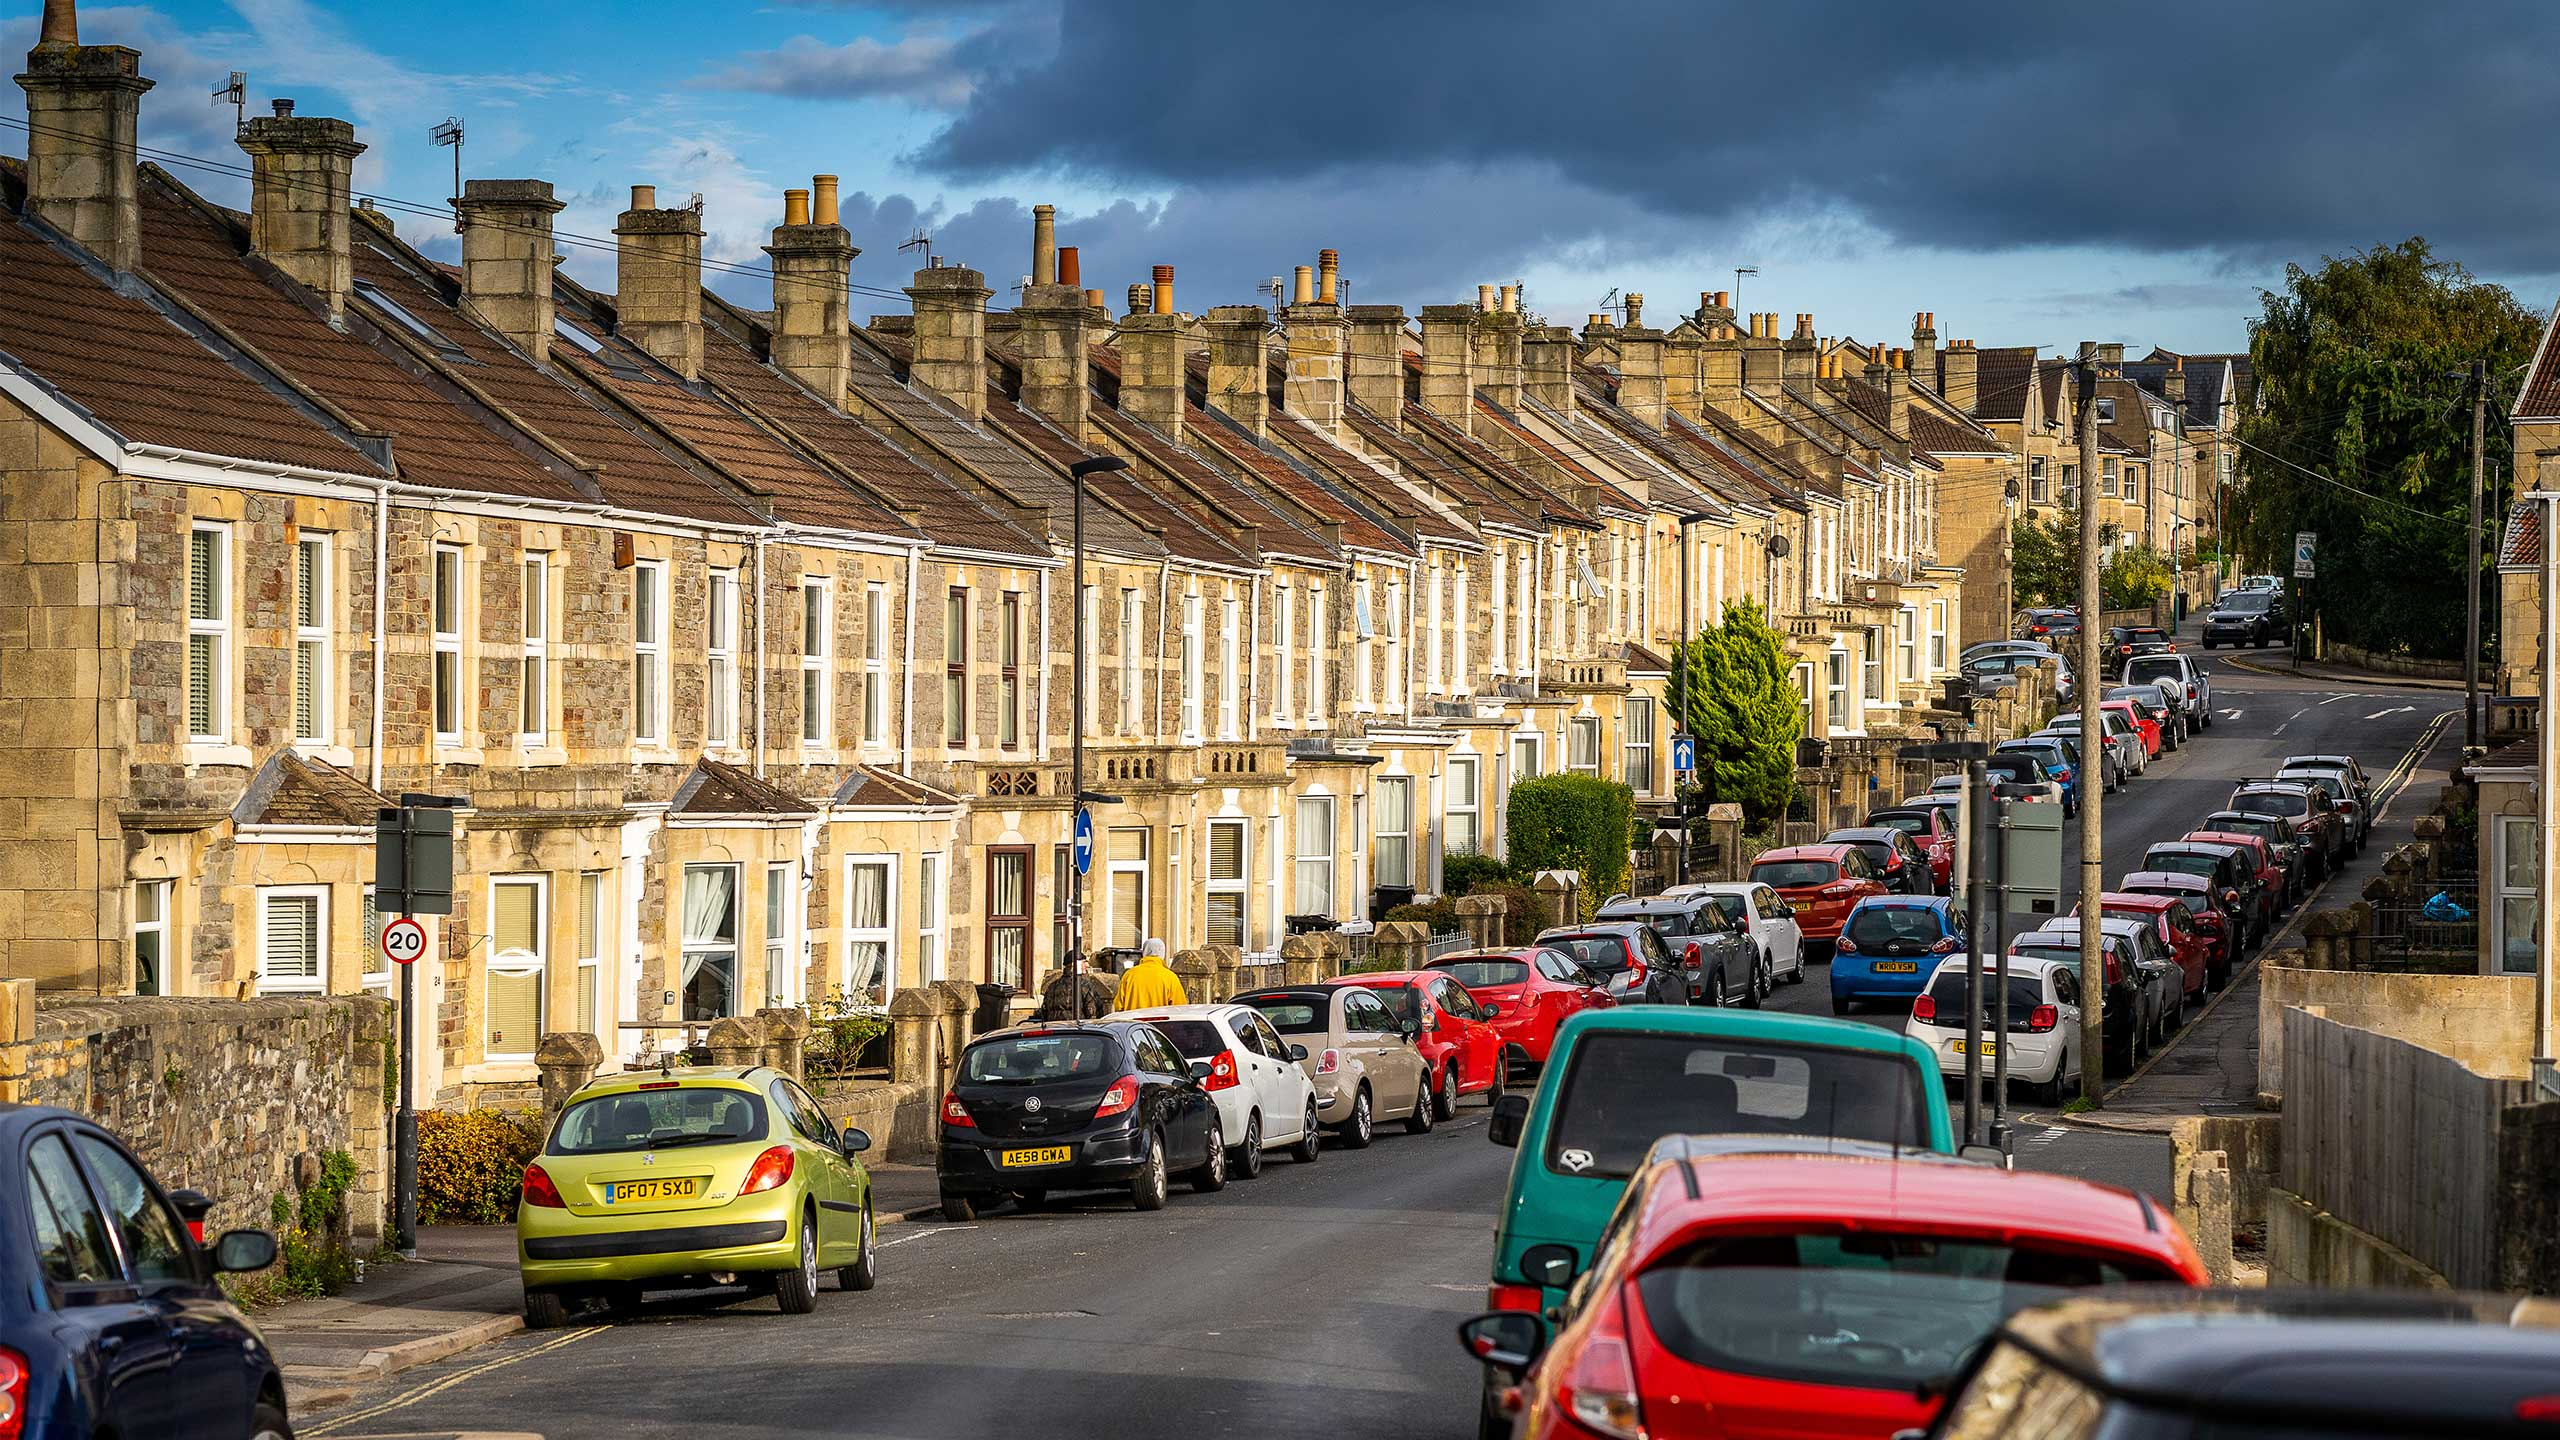 Houses in Oldfield Park, Bath.